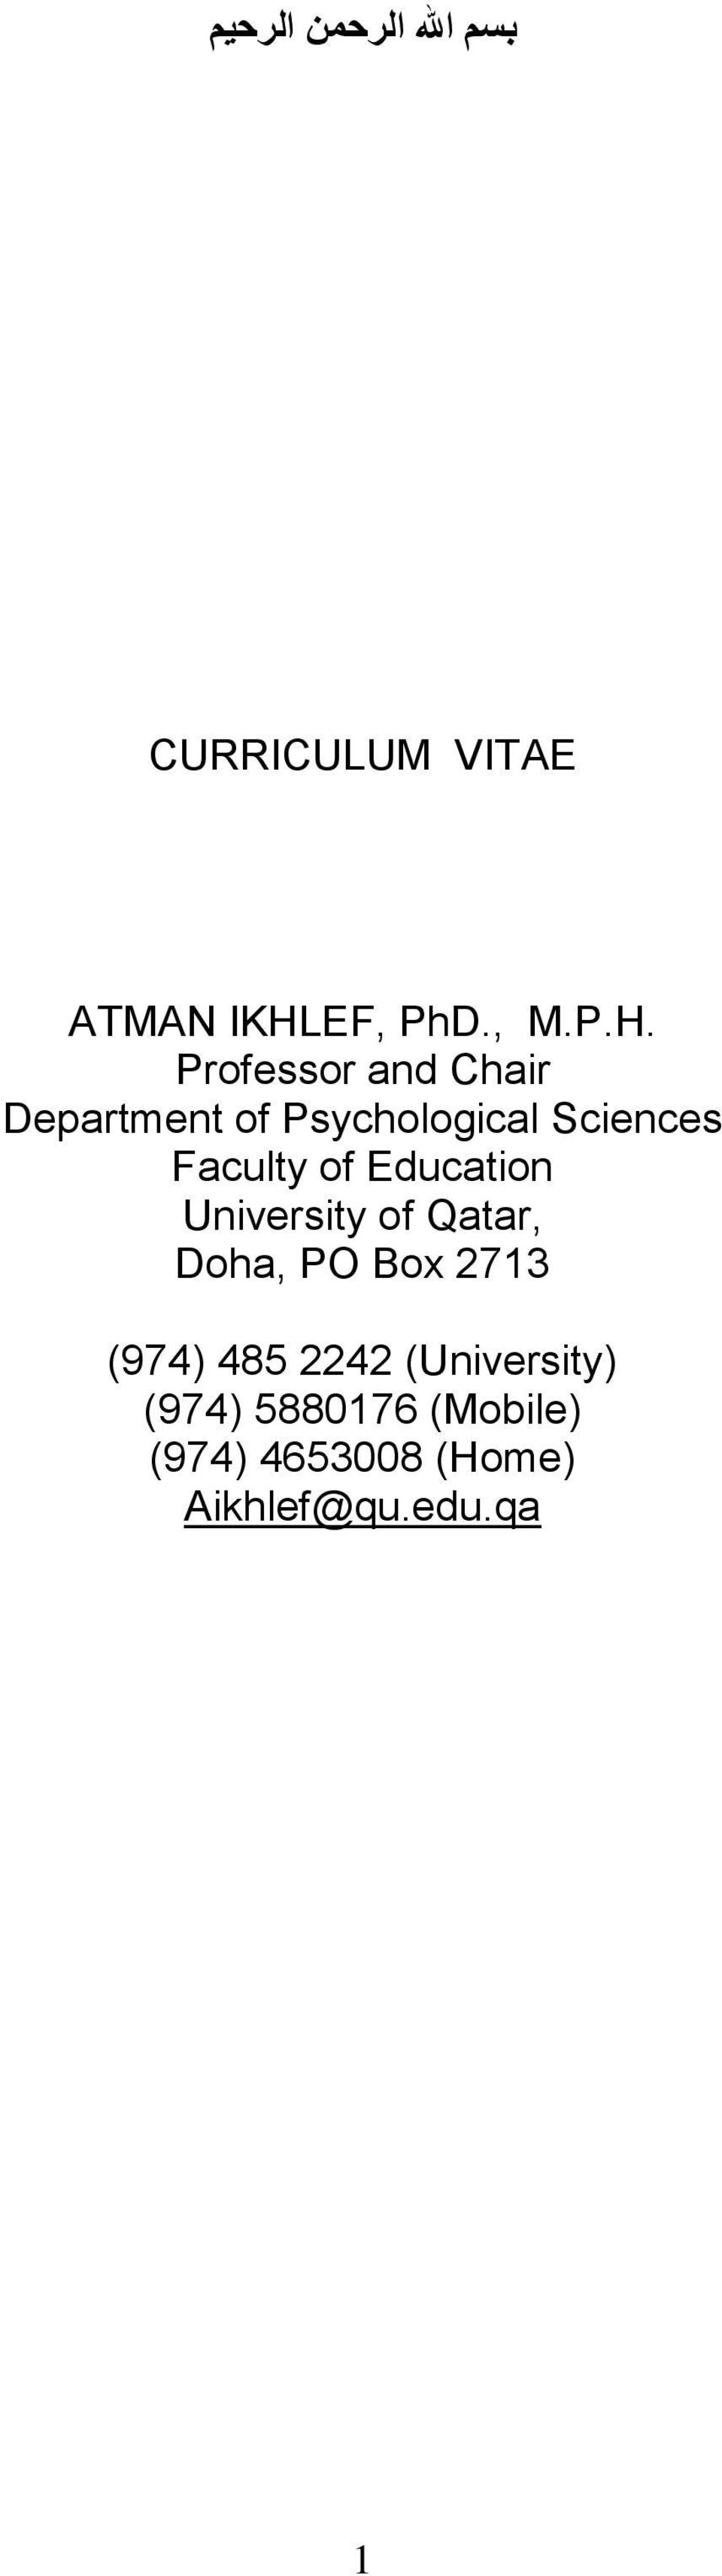 Professor and Chair Department of Psychological Sciences Faculty of